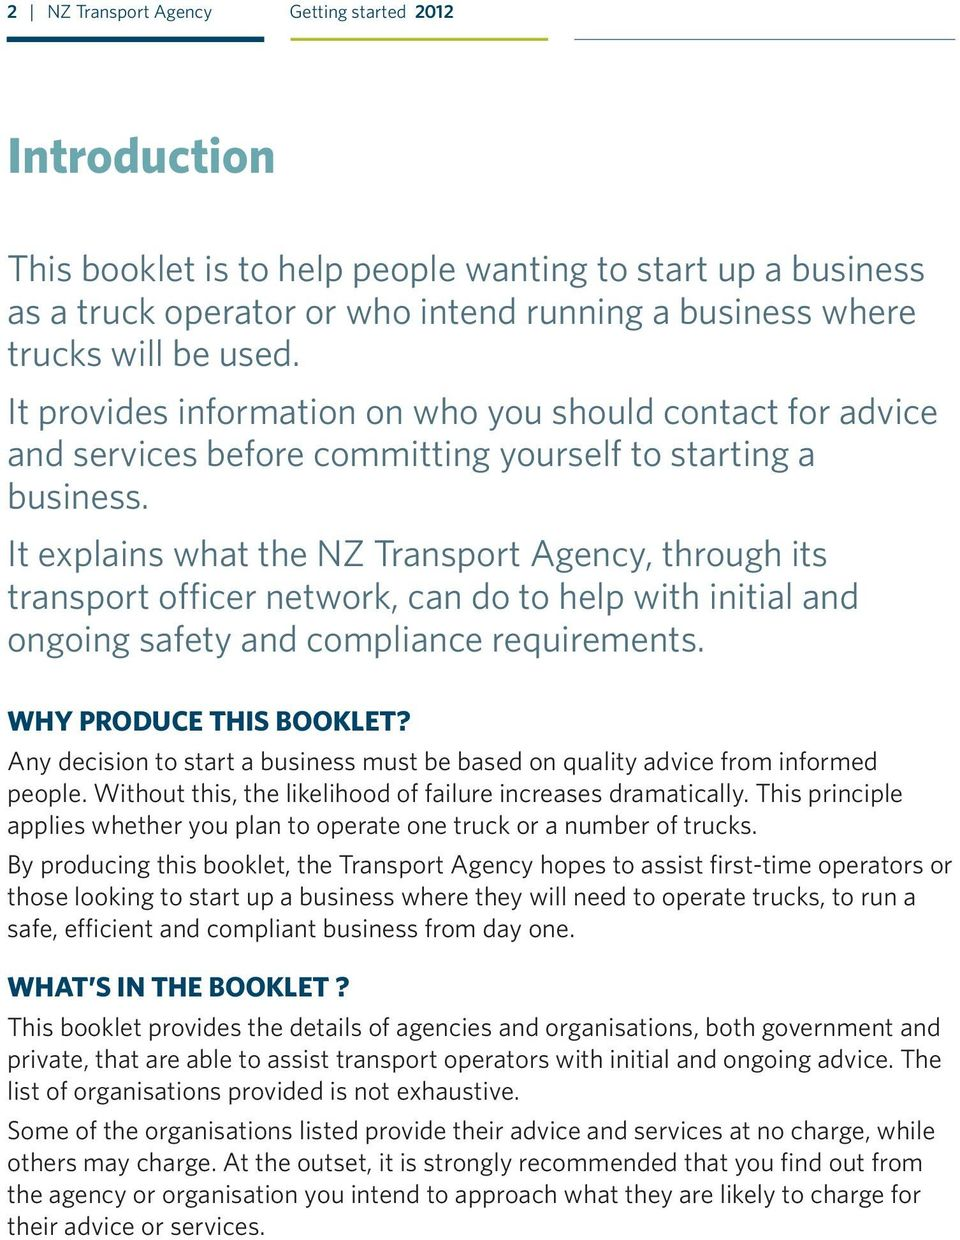 It explains what the NZ Transport Agency, through its transport officer network, can do to help with initial and ongoing safety and compliance requirements. why produce this booklet?